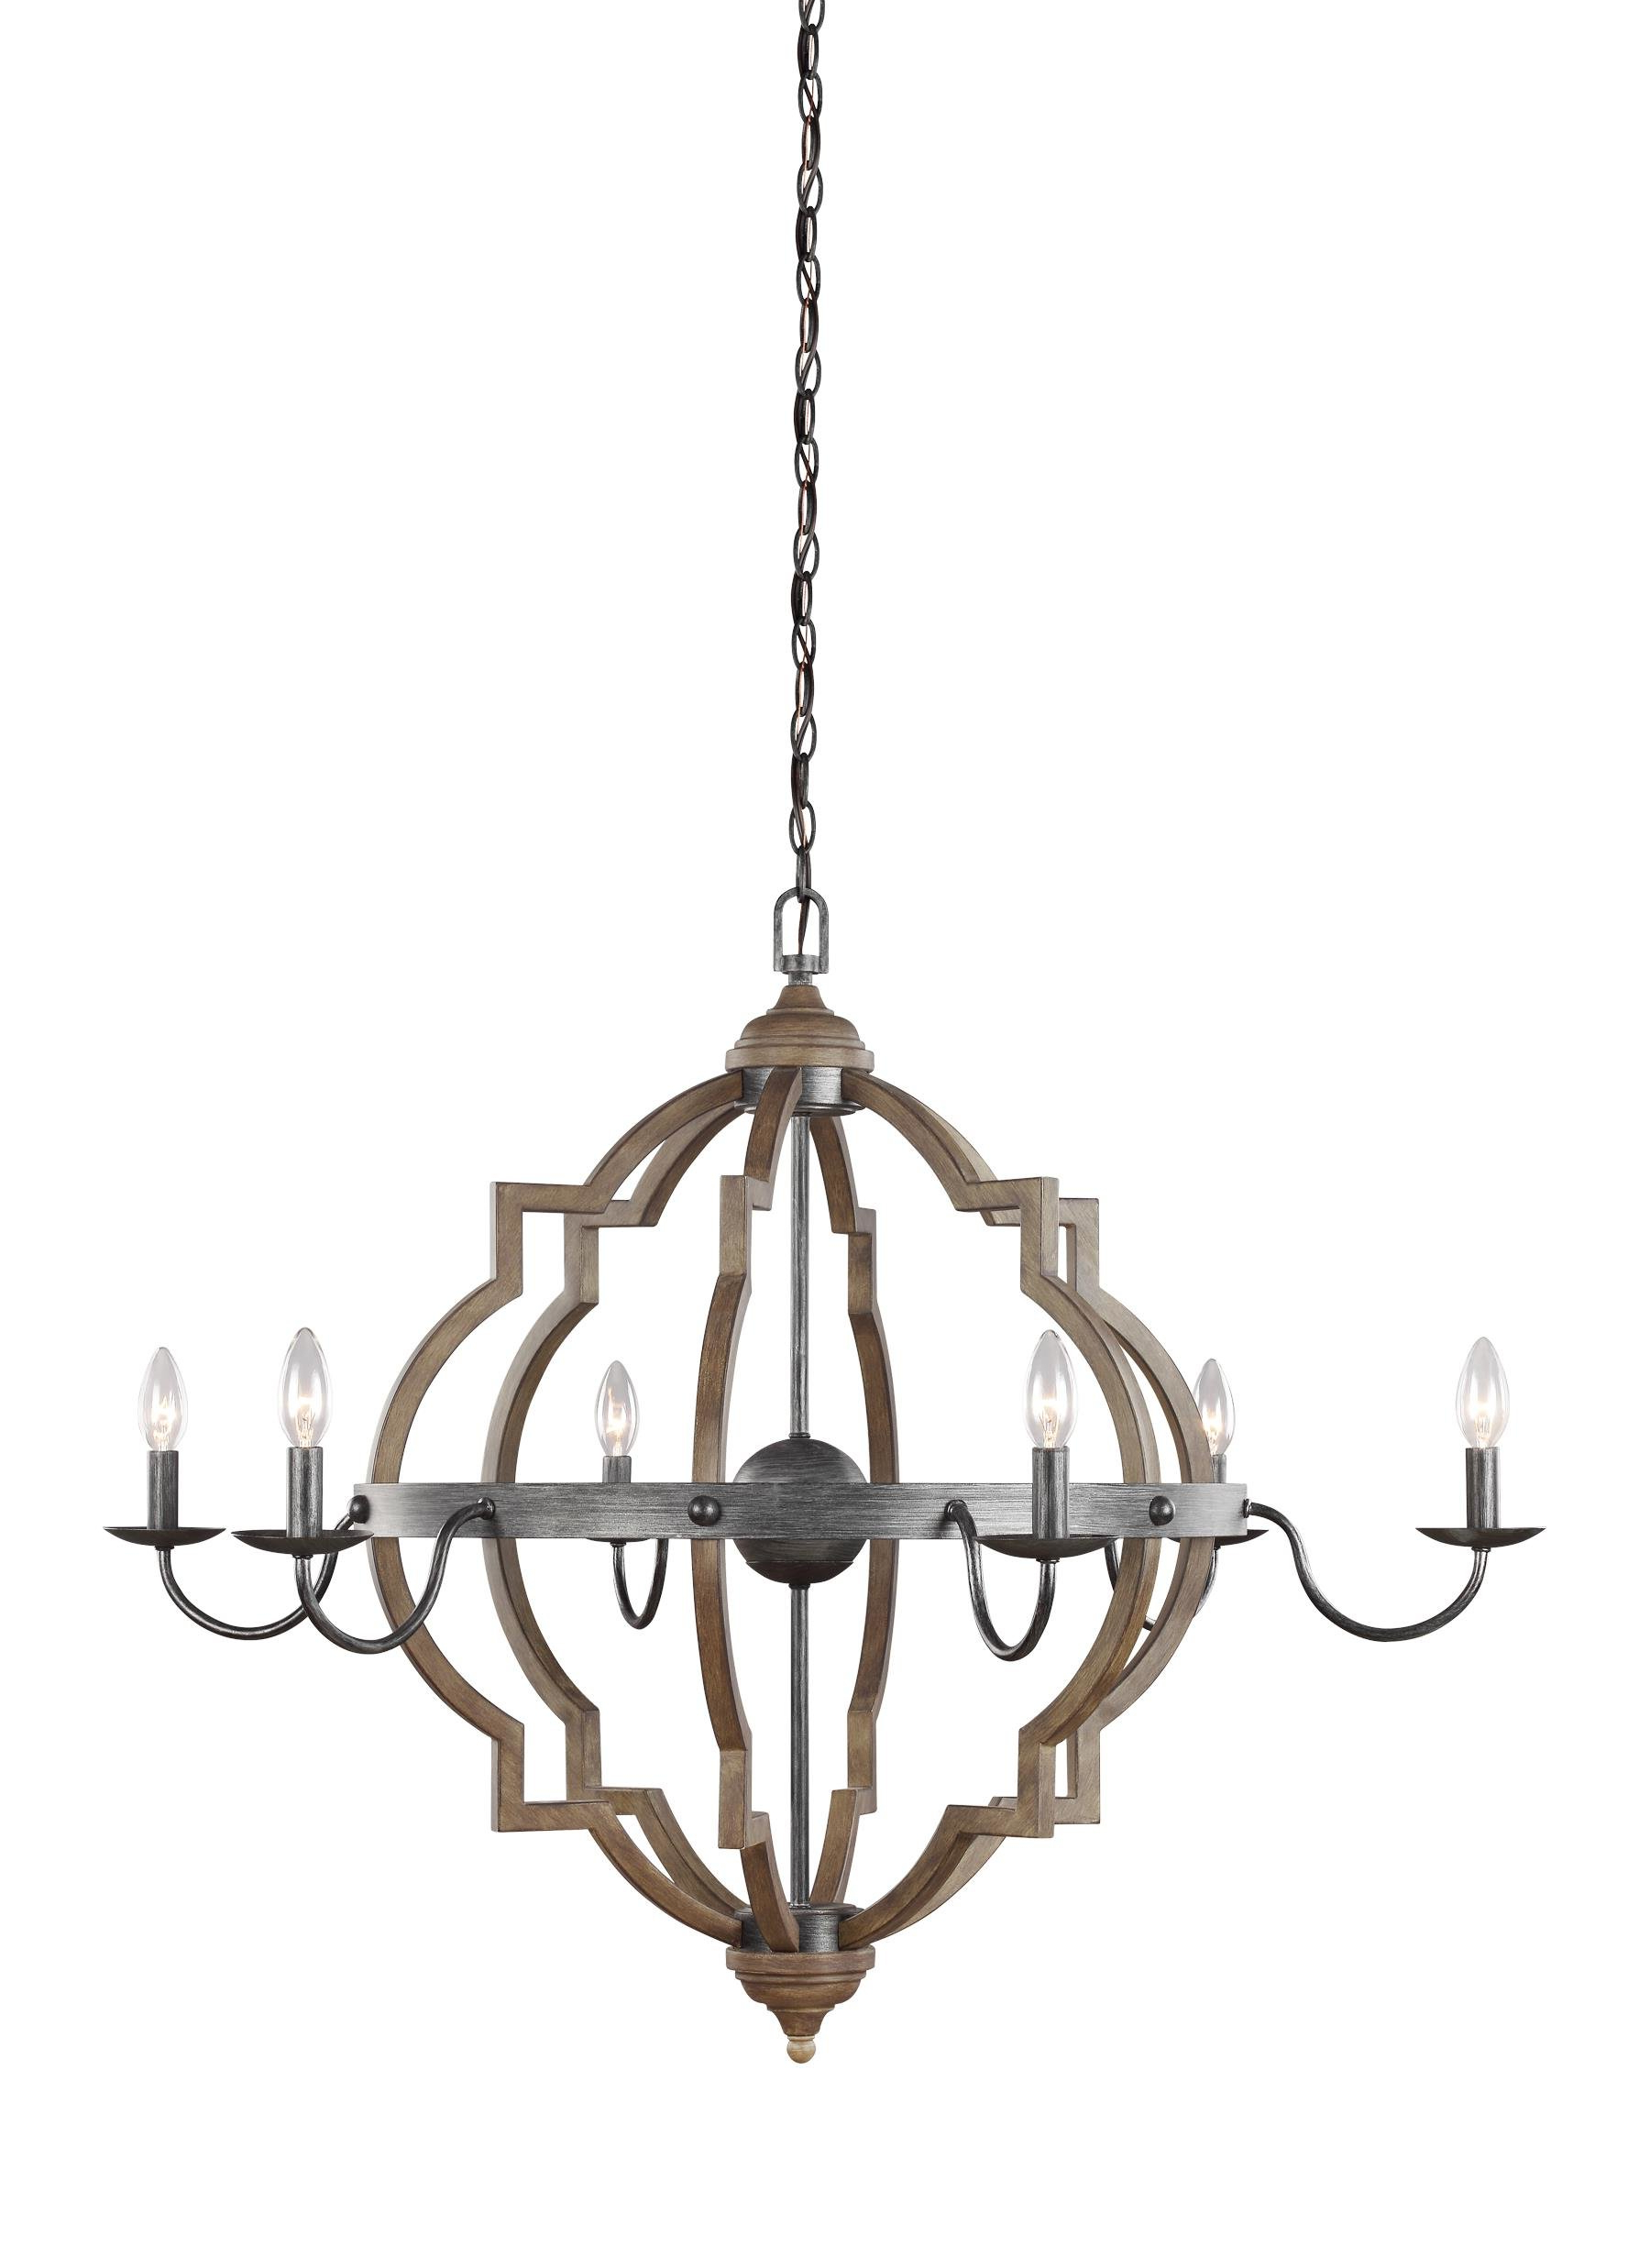 Diaz 6 Light Candle Style Chandeliers Within Current Donna 6 Light Candle Style Chandelier & Reviews (View 6 of 20)